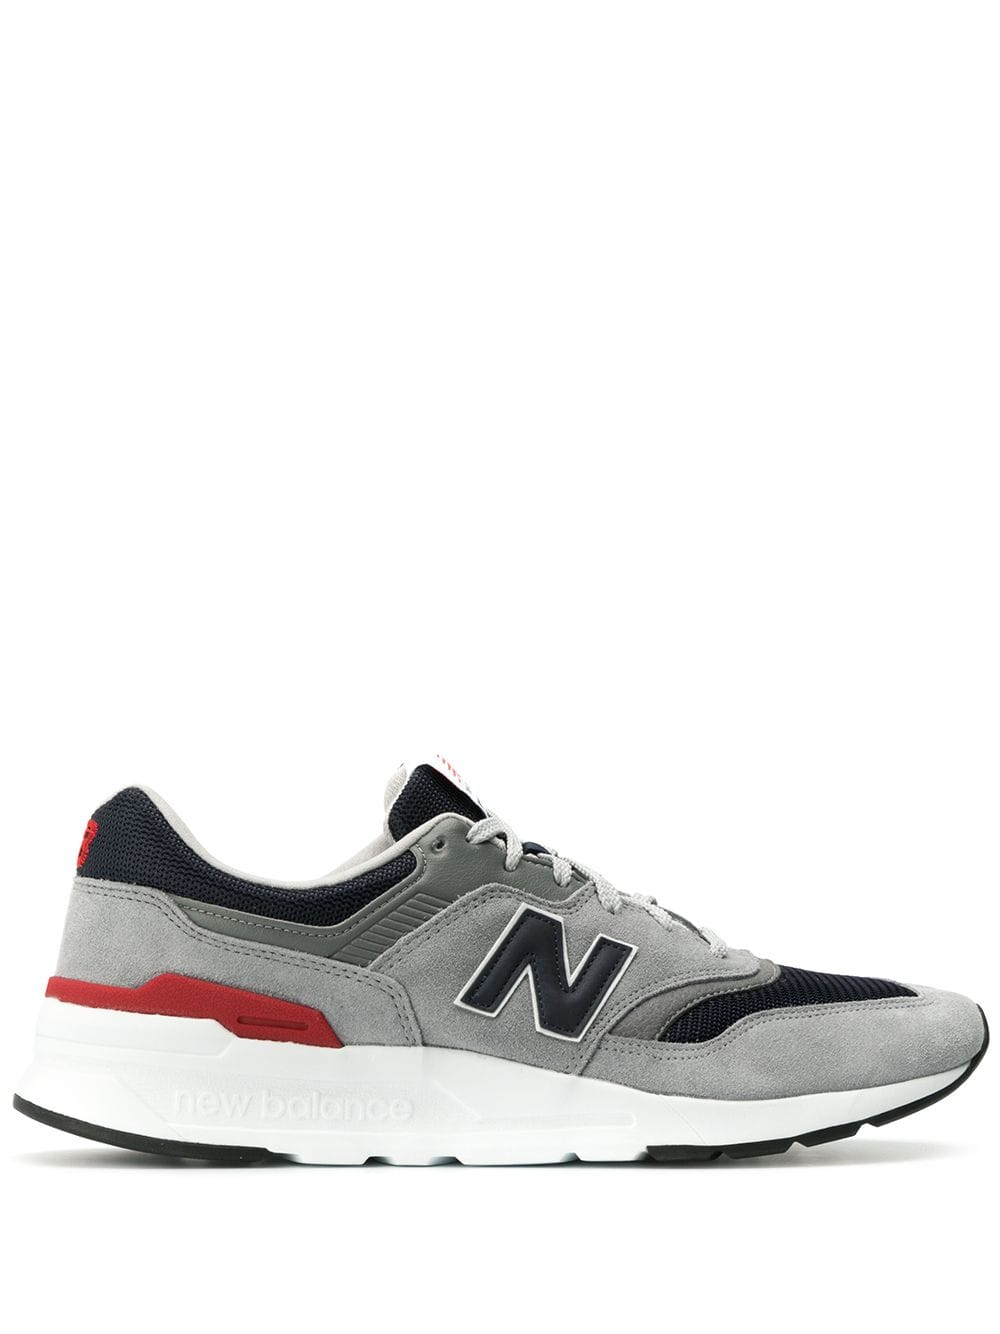 283bfe4dcb NEW BALANCE NEW BALANCE LOW-TOP SNEAKERS - GREY. #newbalance #shoes ...